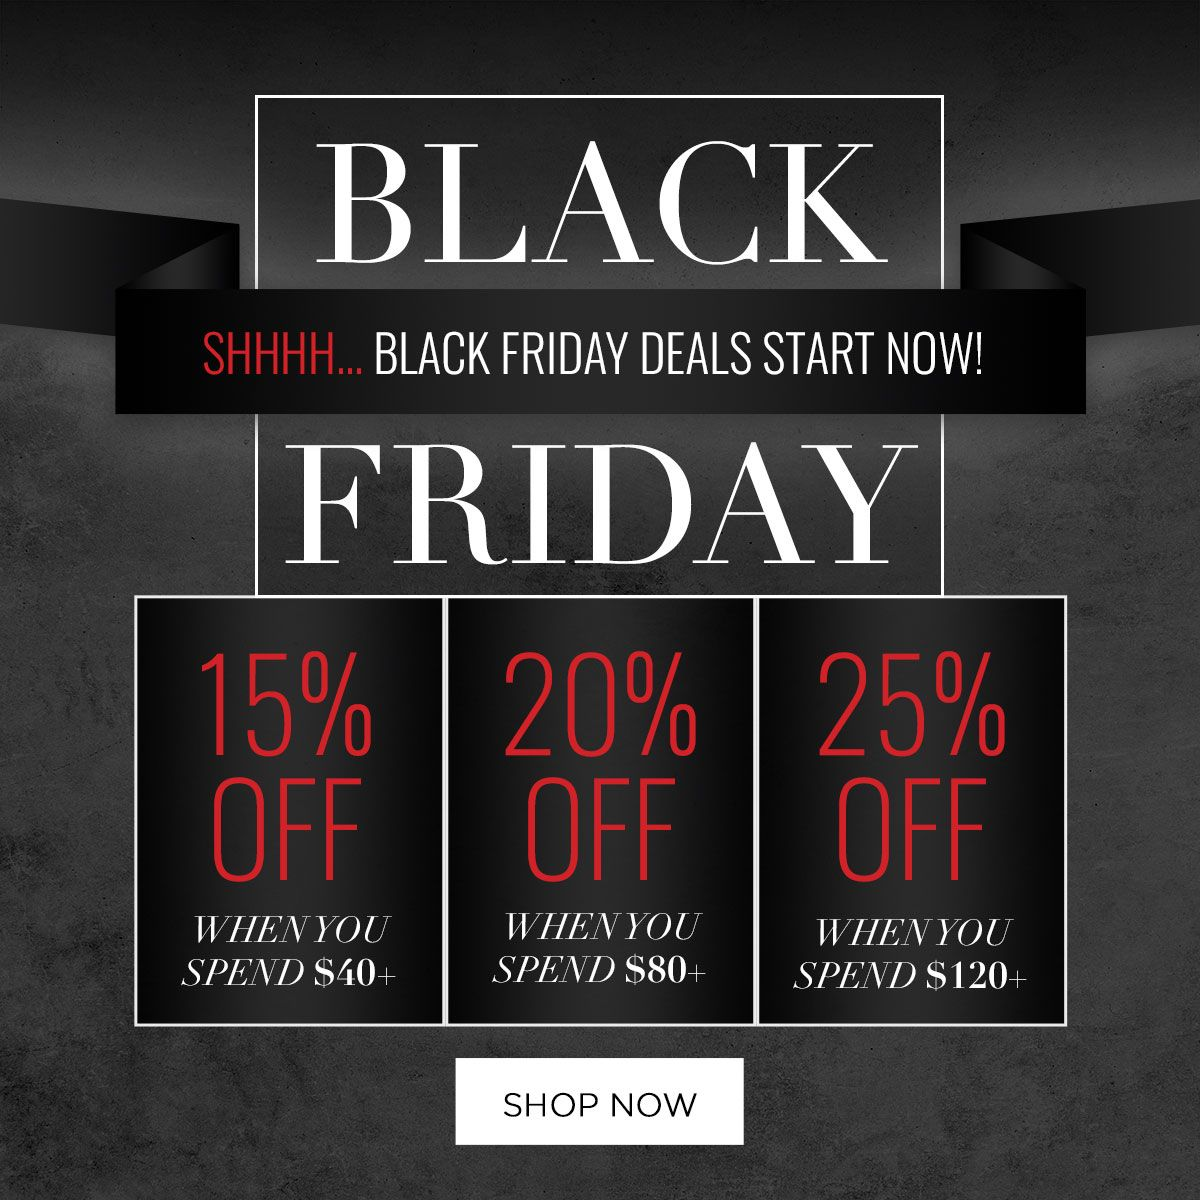 Black Friday is up and running in the Evanescence store. Head over now for some great deals! https://t.co/q4zVT5ejY6 https://t.co/ZK7eb4cwPt